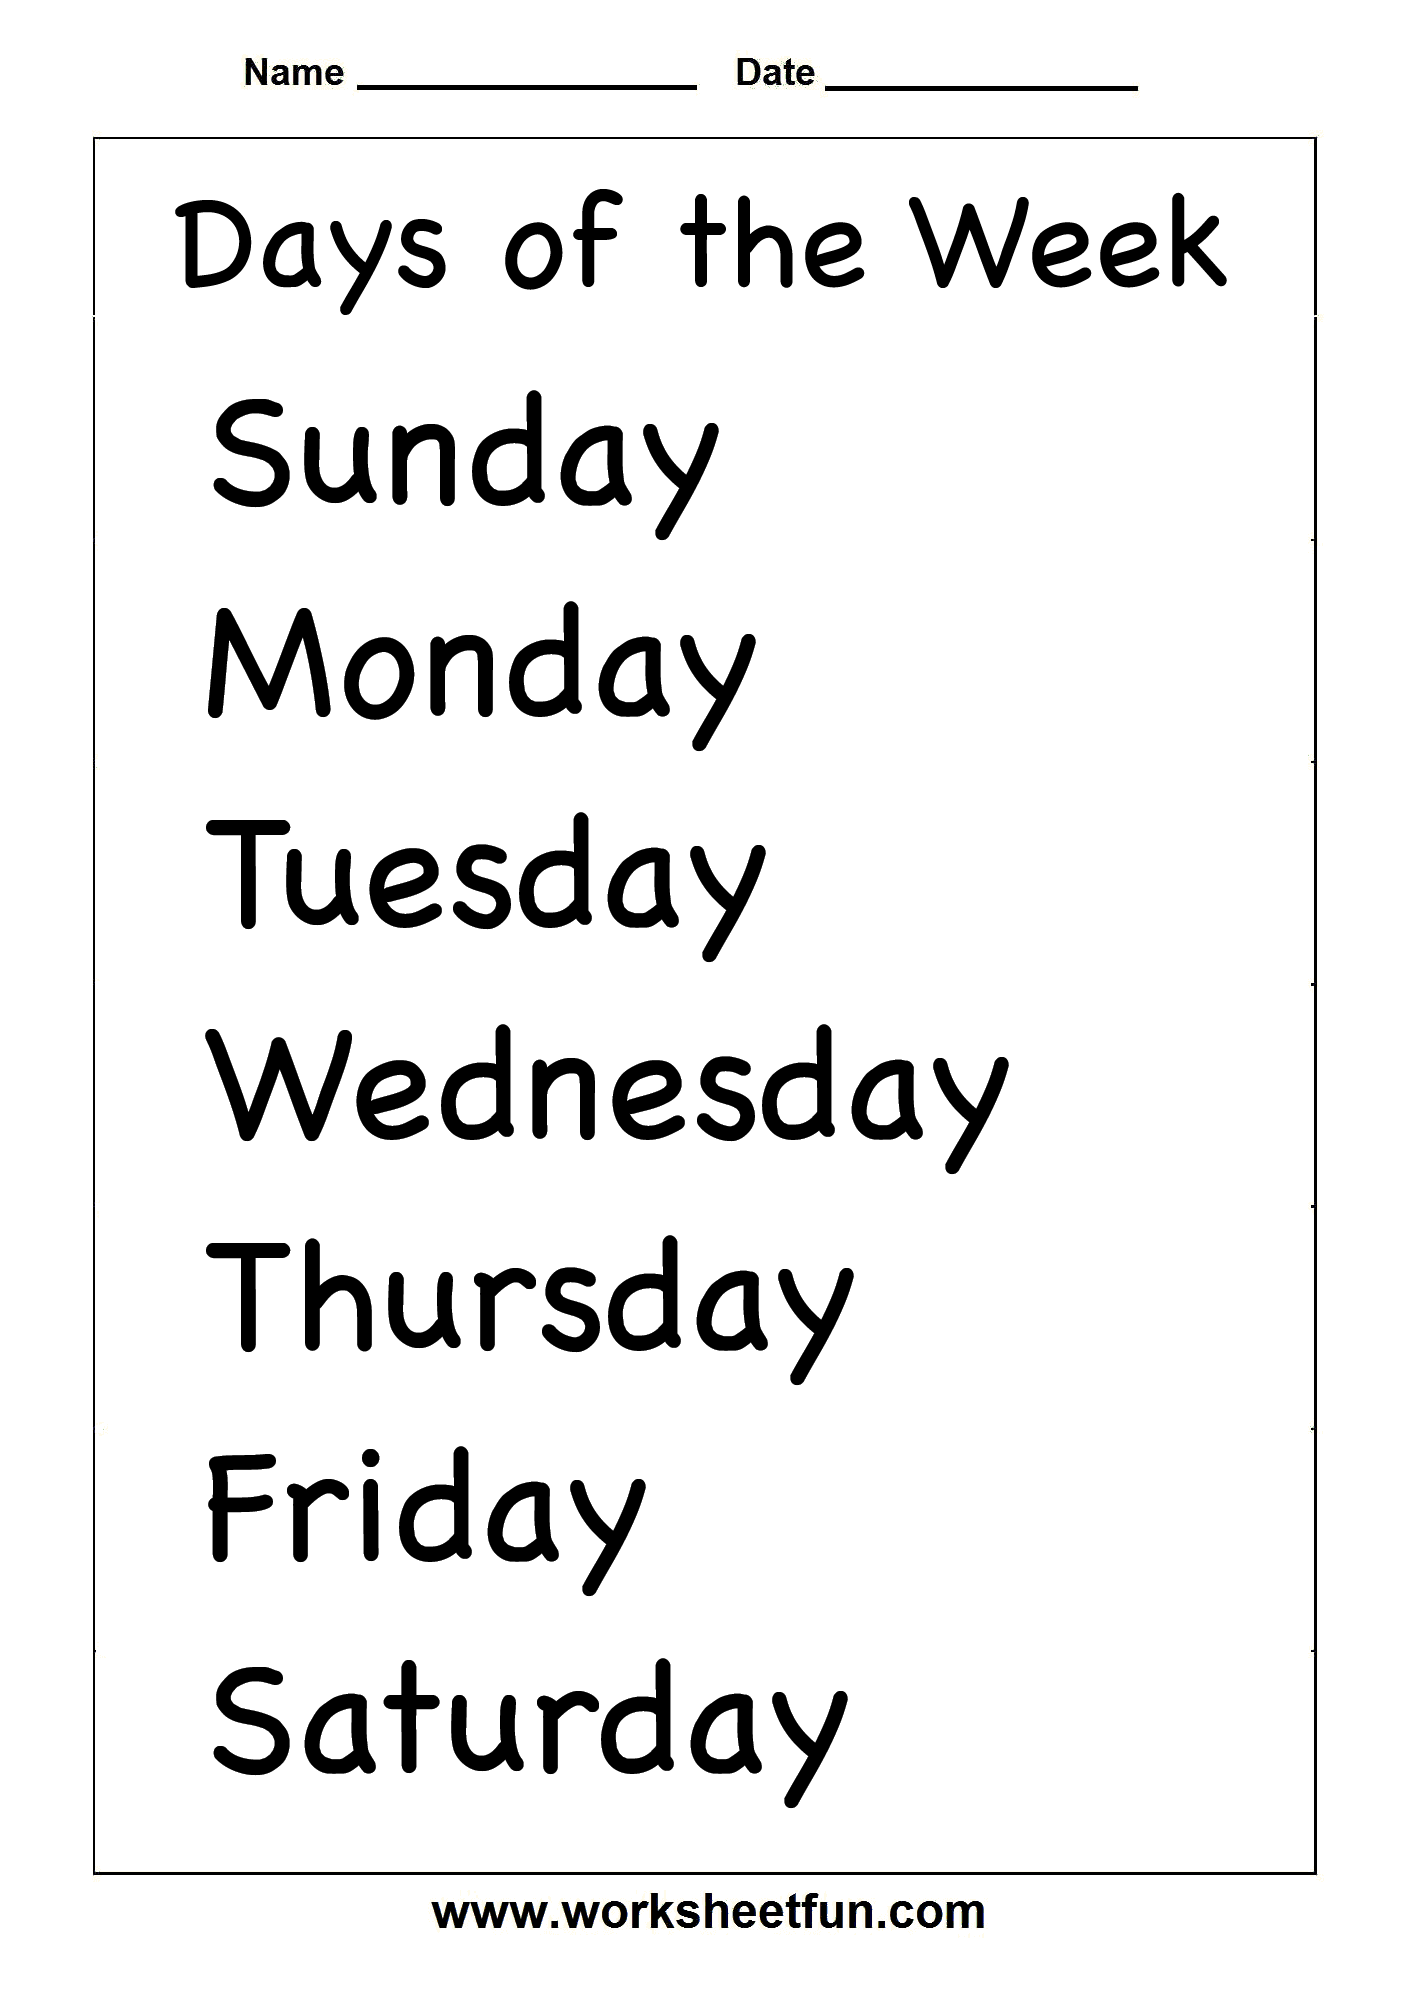 Days Of The Week 2 Worksheets Free Printable Worksheets Worksheetfun